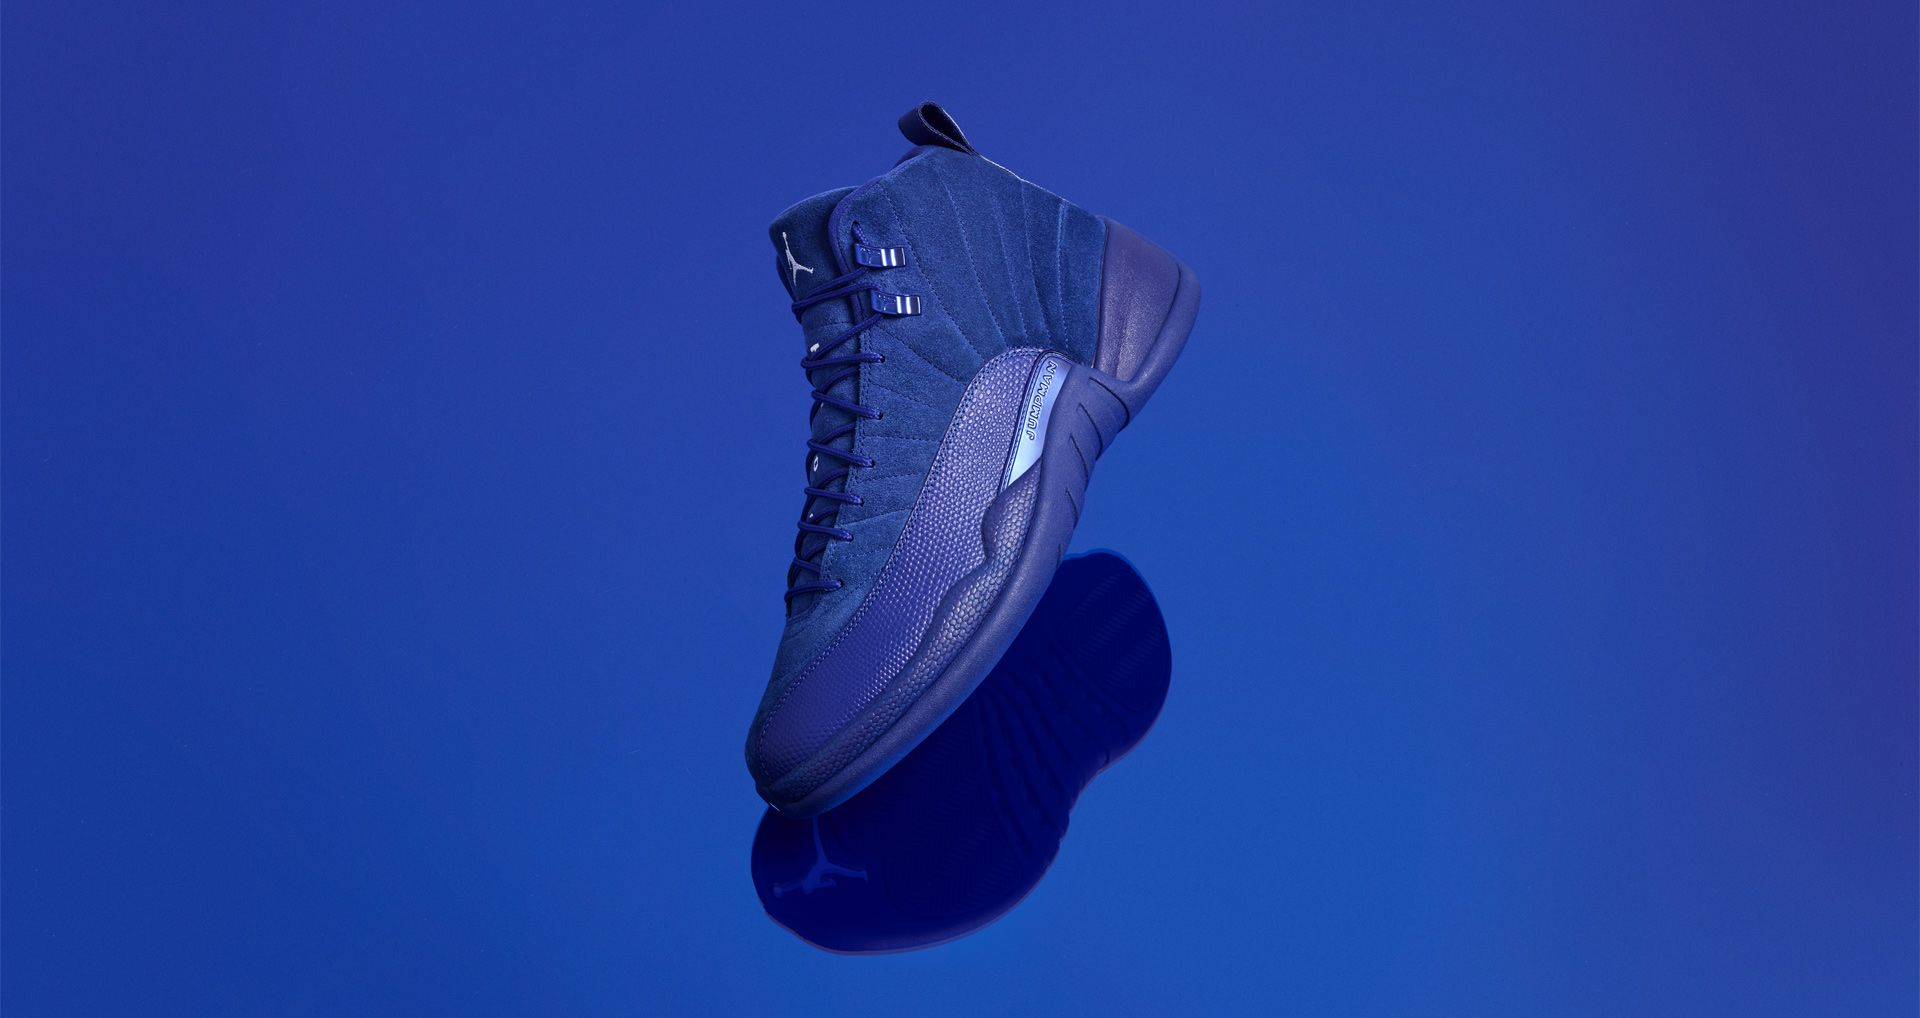 91c6f243a65 Air Jordan 12 Retro 'Deep Royal Blue'. Release Date. Nike⁠+ SNKRS